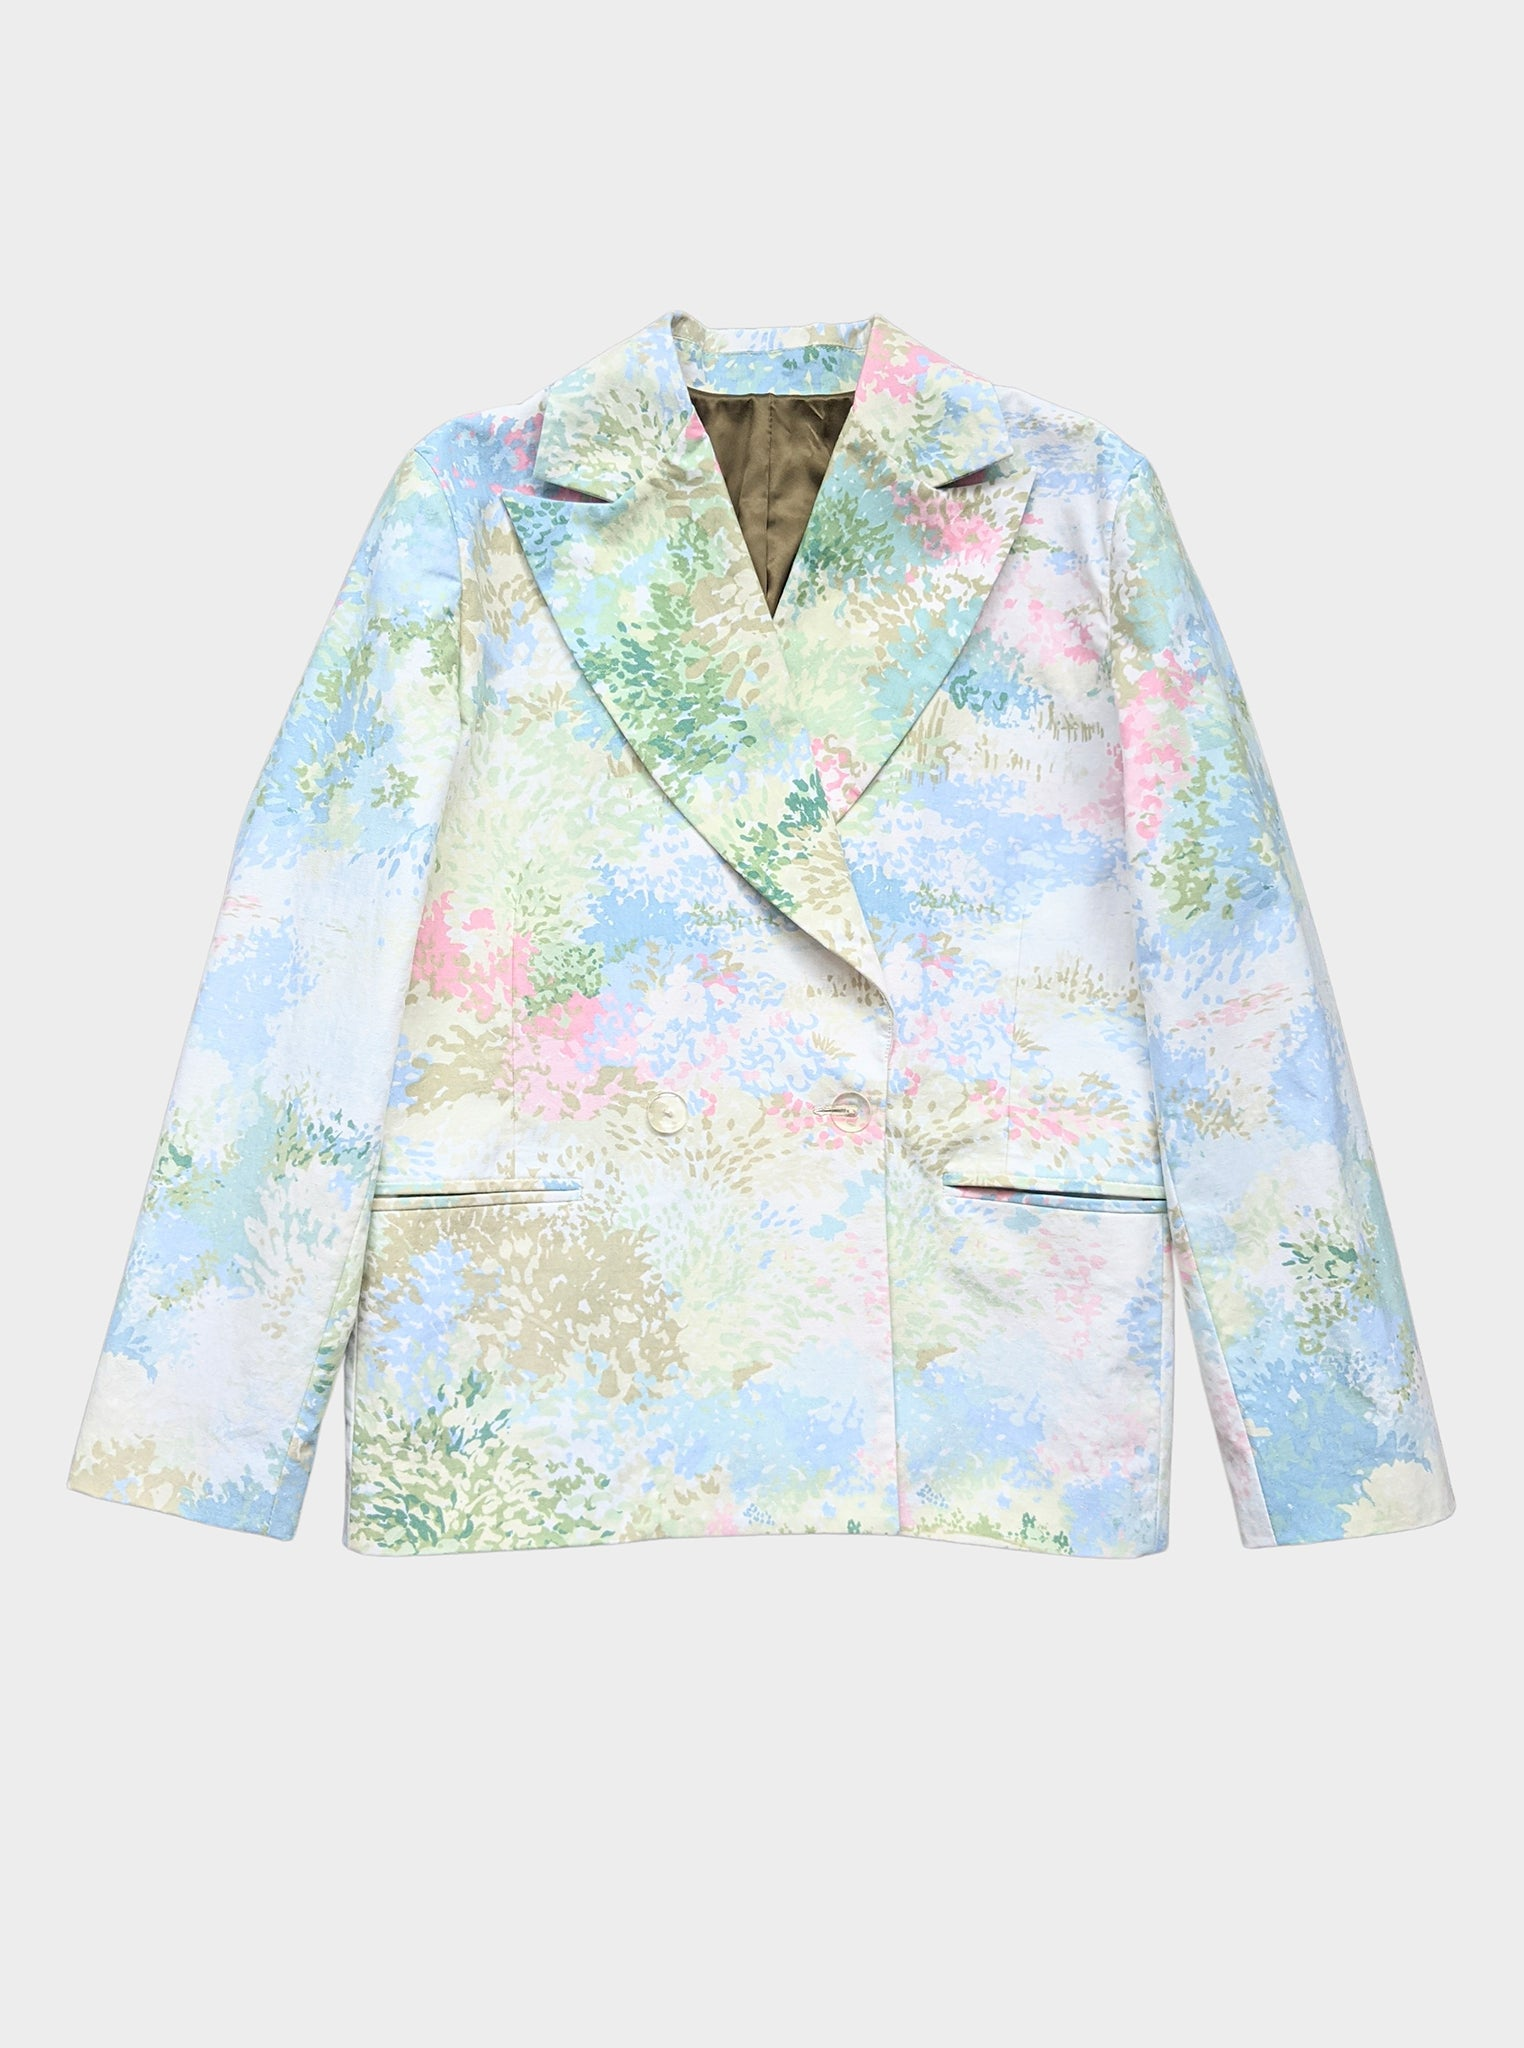 Vinti Andrews Curtain Floral Tailor Jacket